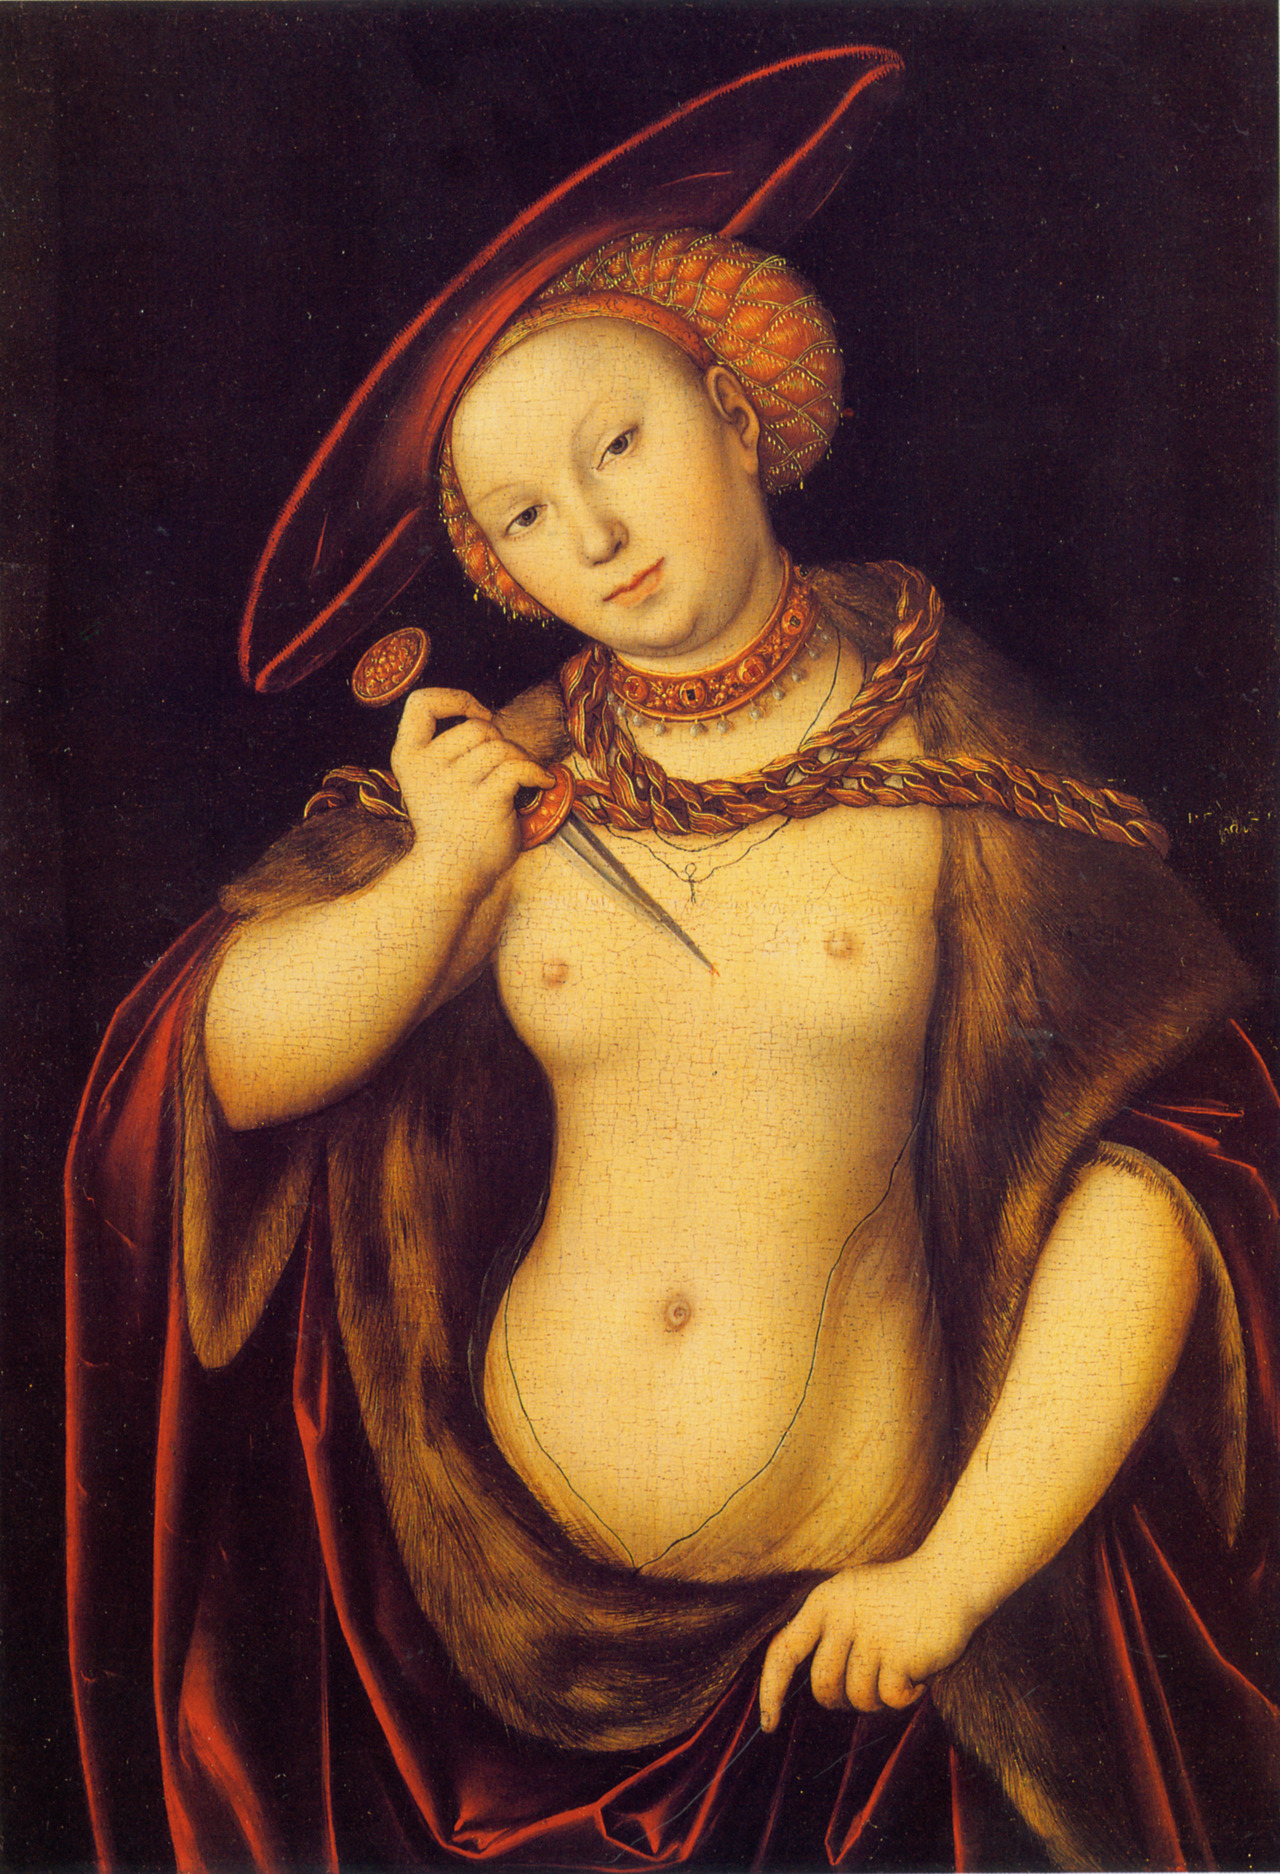 Lucas Cranach the Elder, Lucretia